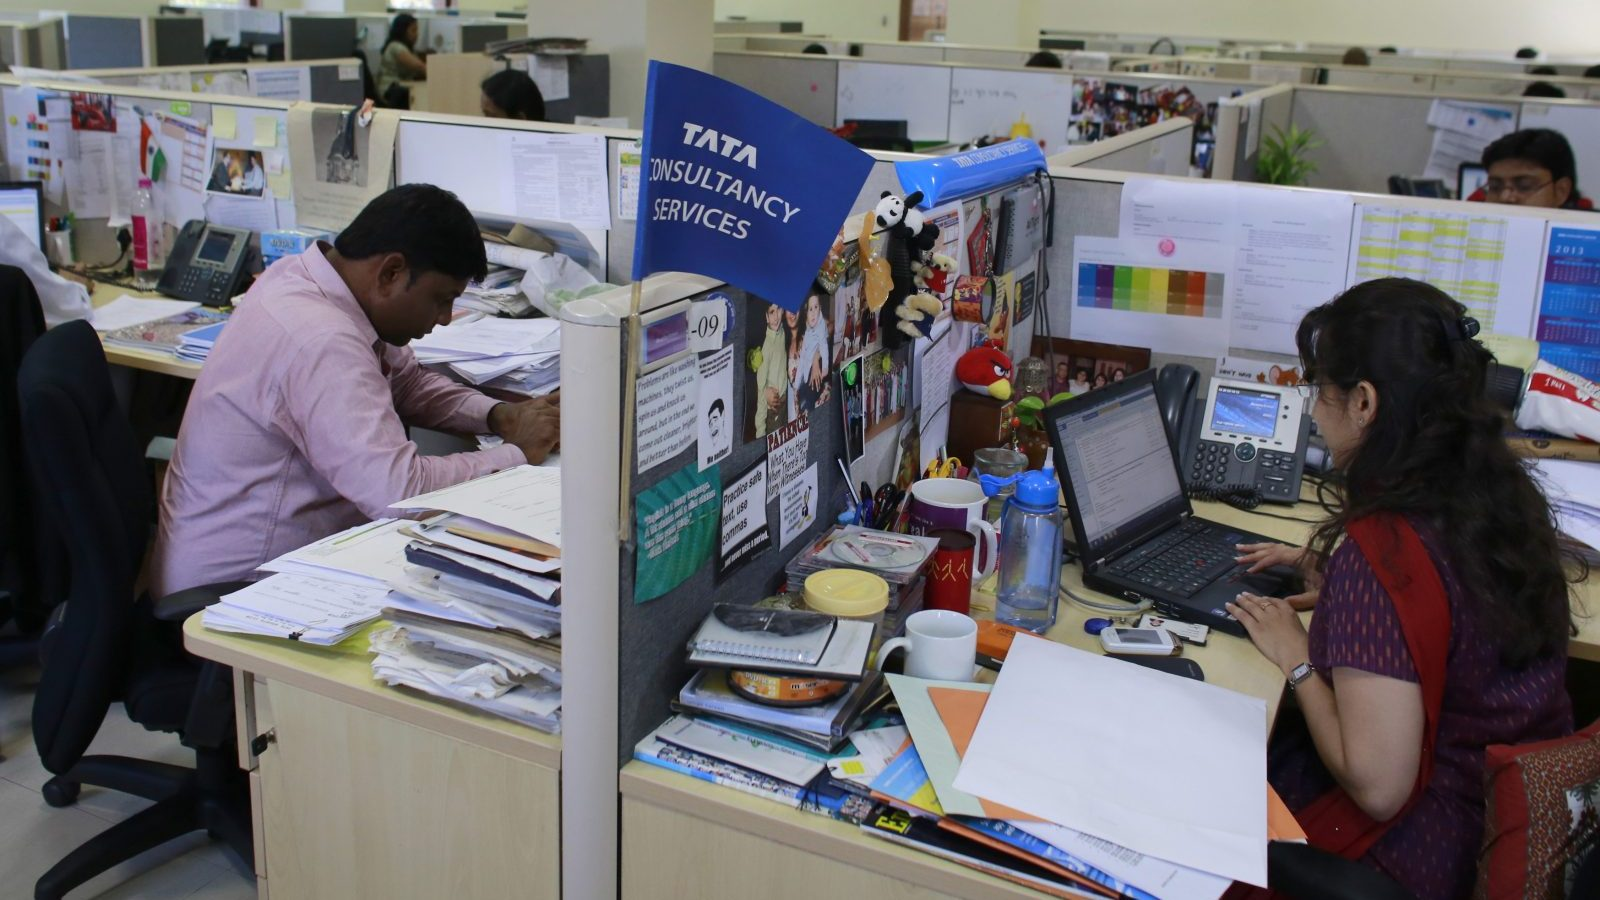 """Employees of Tata Consultancy Services (TCS) work inside the company headquarters in Mumbai March 14, 2013. India's IT outsourcers are promoting """"mini CEOs"""" capable of running businesses on their own, while trimming down on the hordes of entry-level computer coders they normally hire as they try to squeeze more profits out of their staff. To match Analysis INDIA-TECH/STAFFING  Picture taken March 14, 2013.     REUTERS/Danish Siddiqui (INDIA - Tags: BUSINESS SCIENCE TECHNOLOGY EMPLOYMENT) - GM1E93P0C9E01"""